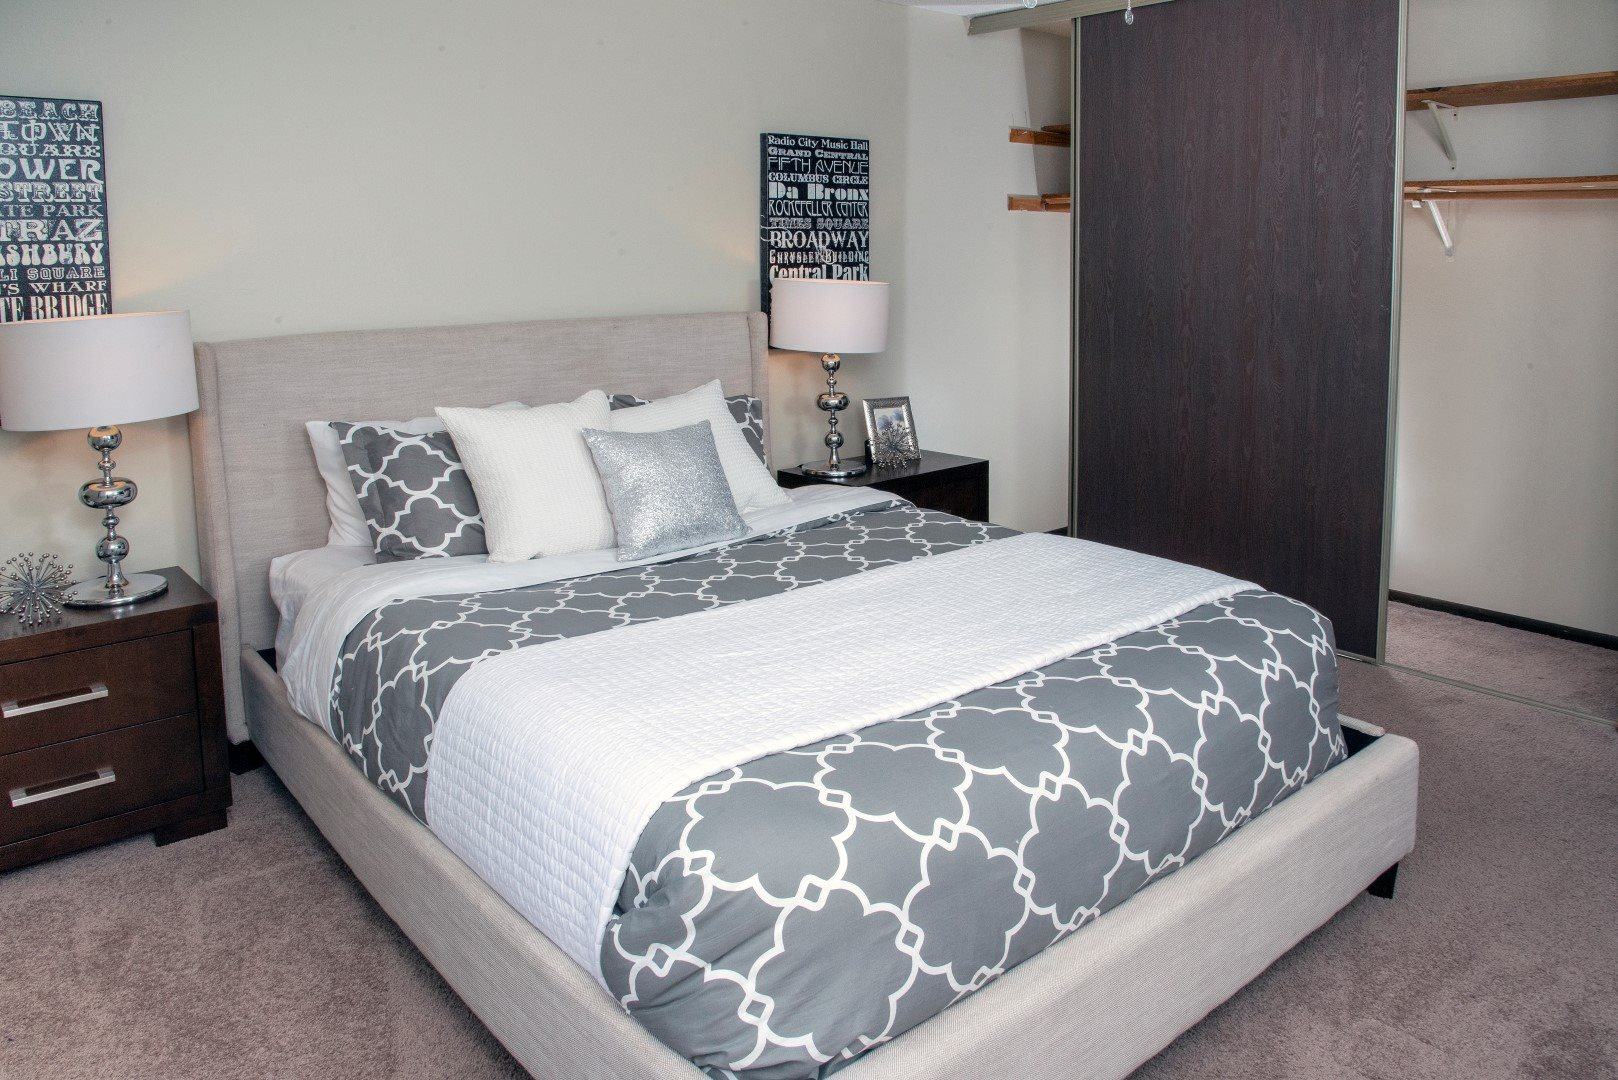 Large bedroom with walk-in closet at 600 10th Ave apartments in Minneapolis, MN